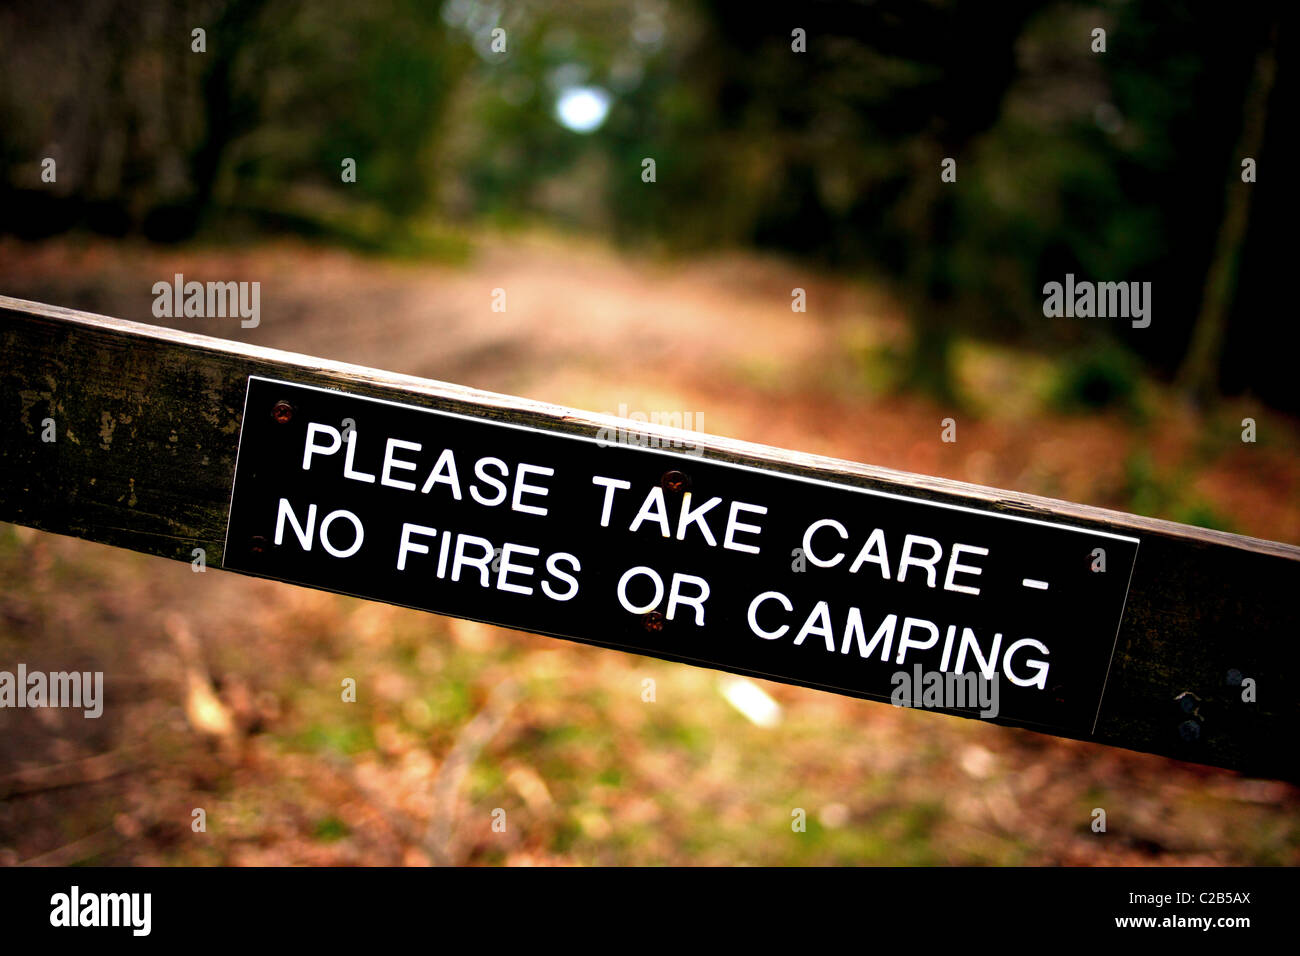 No fires or camping warning sign. - Stock Image